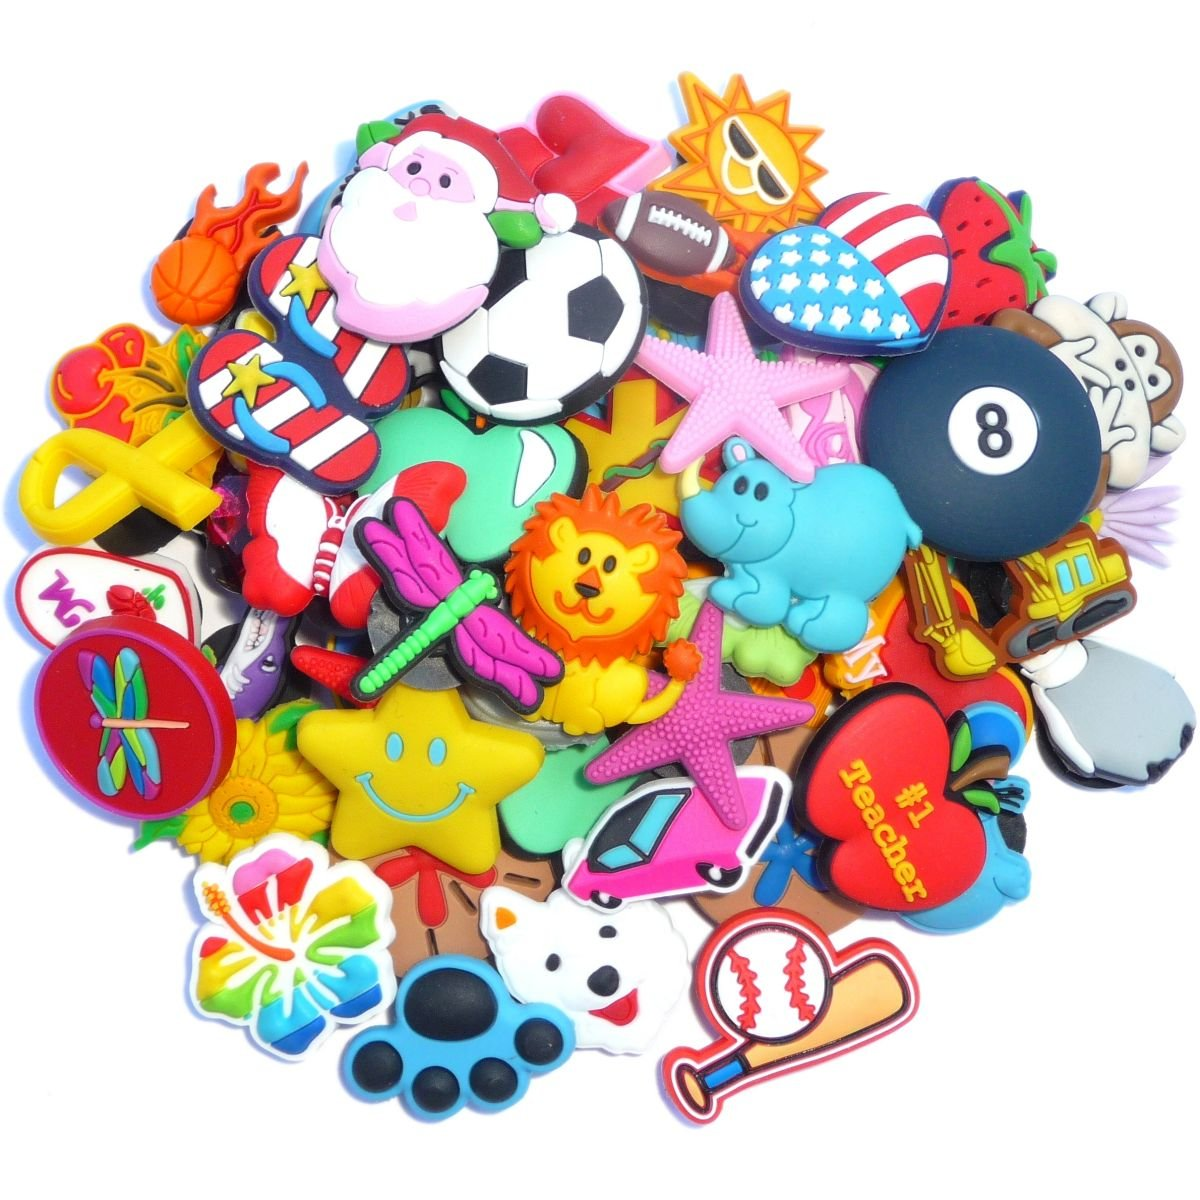 Lot of 100 Pcs PVC Different Shoe Charms for Croc & Jibbitz Bands Bracelet Wristband by Unknown